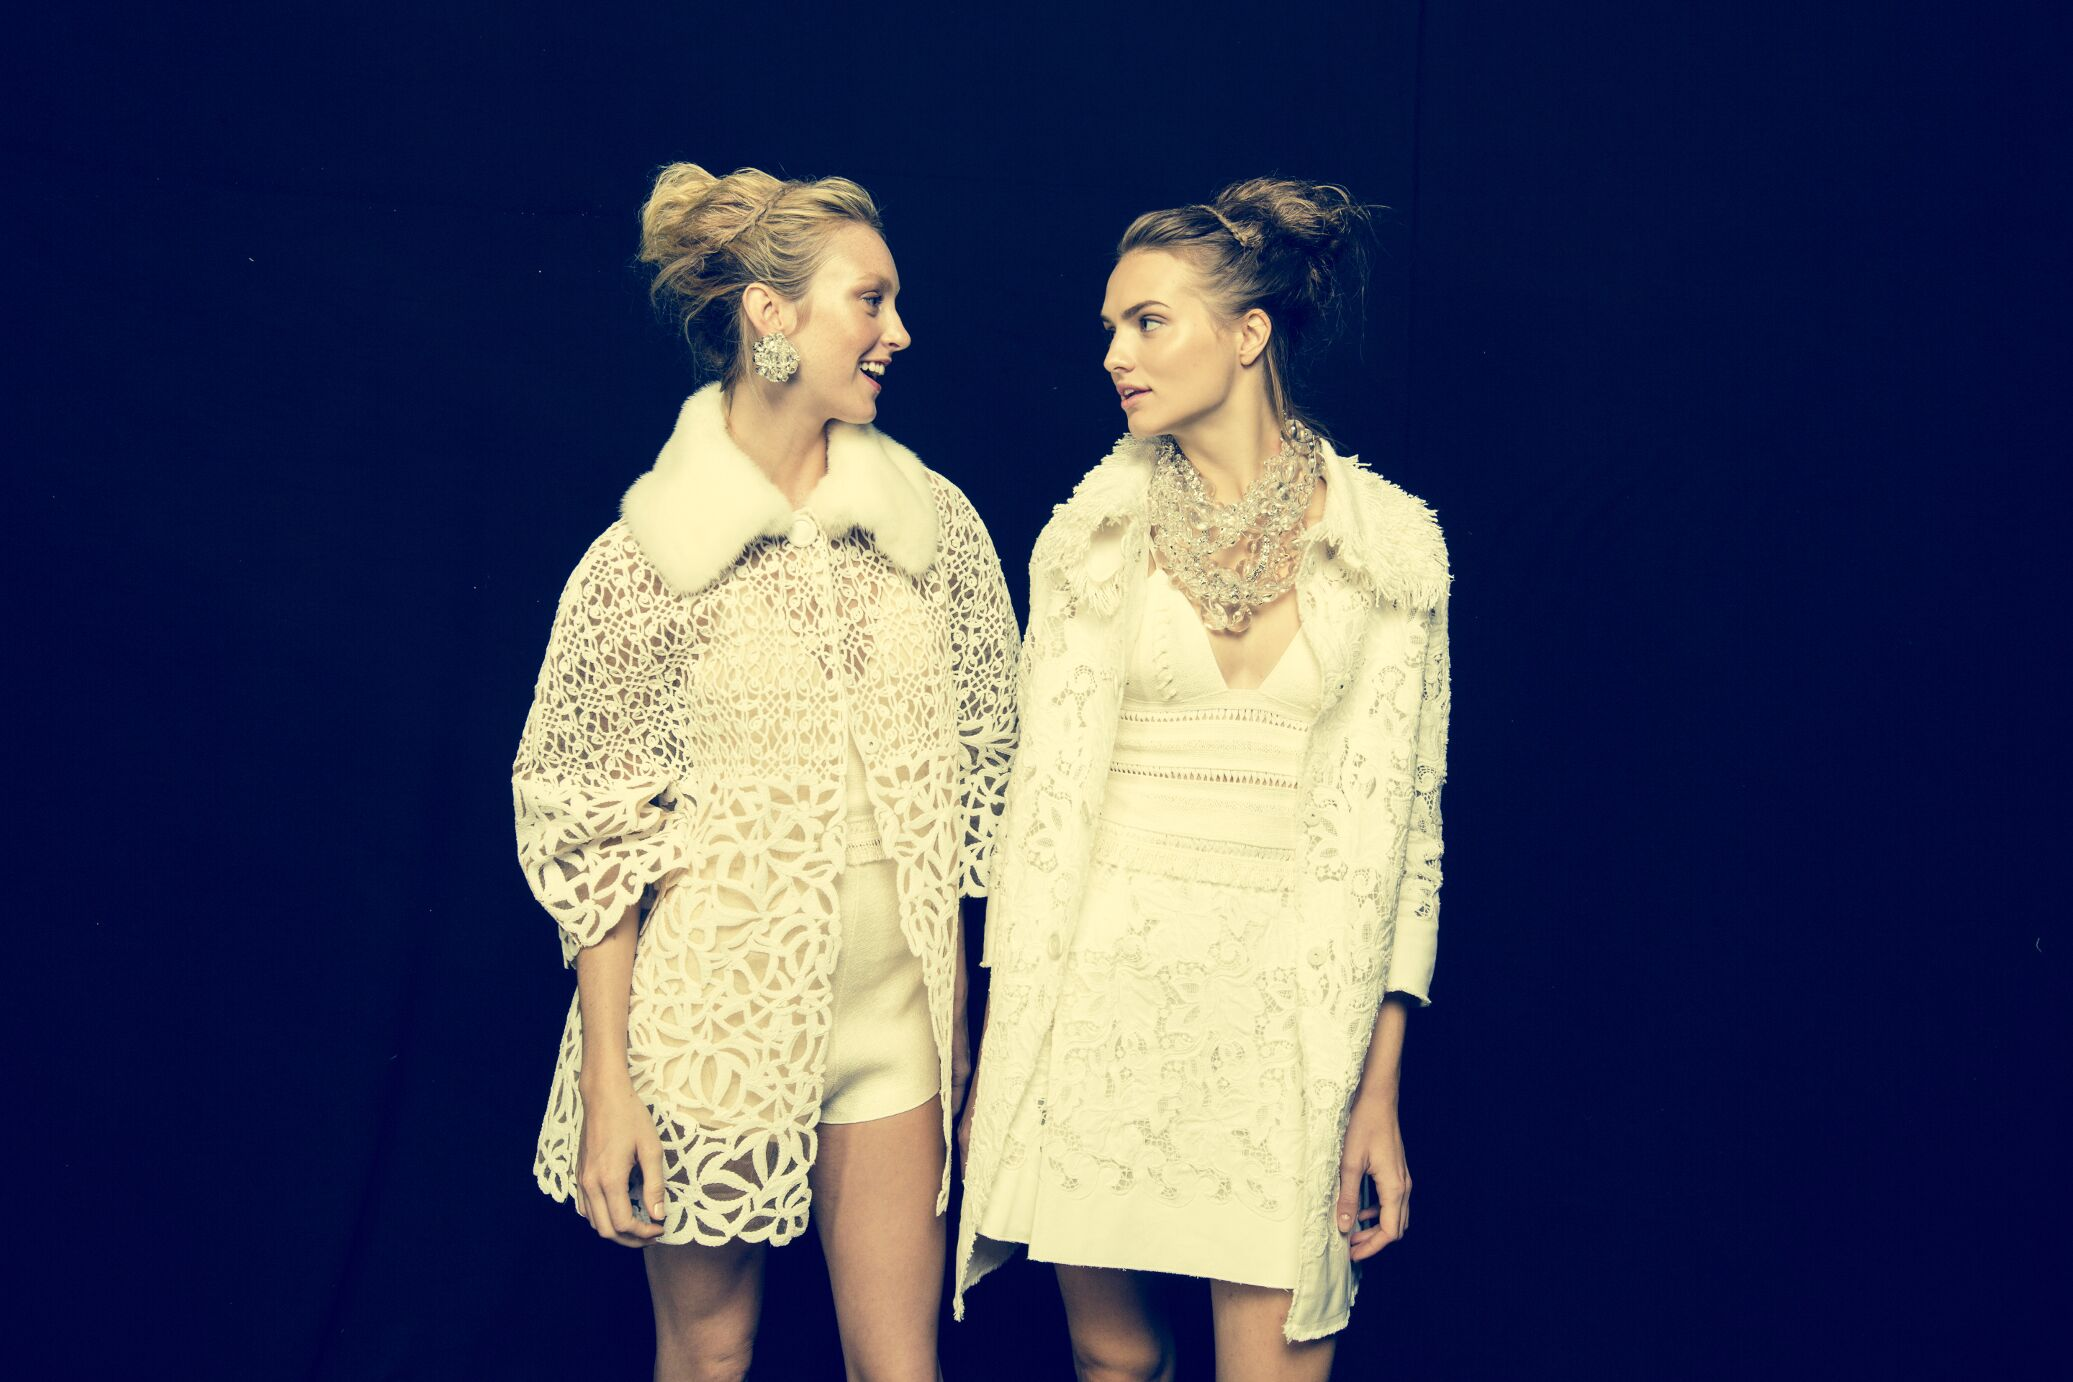 Backstage Ermanno Scervino Fashion Models Milan Fashion Week